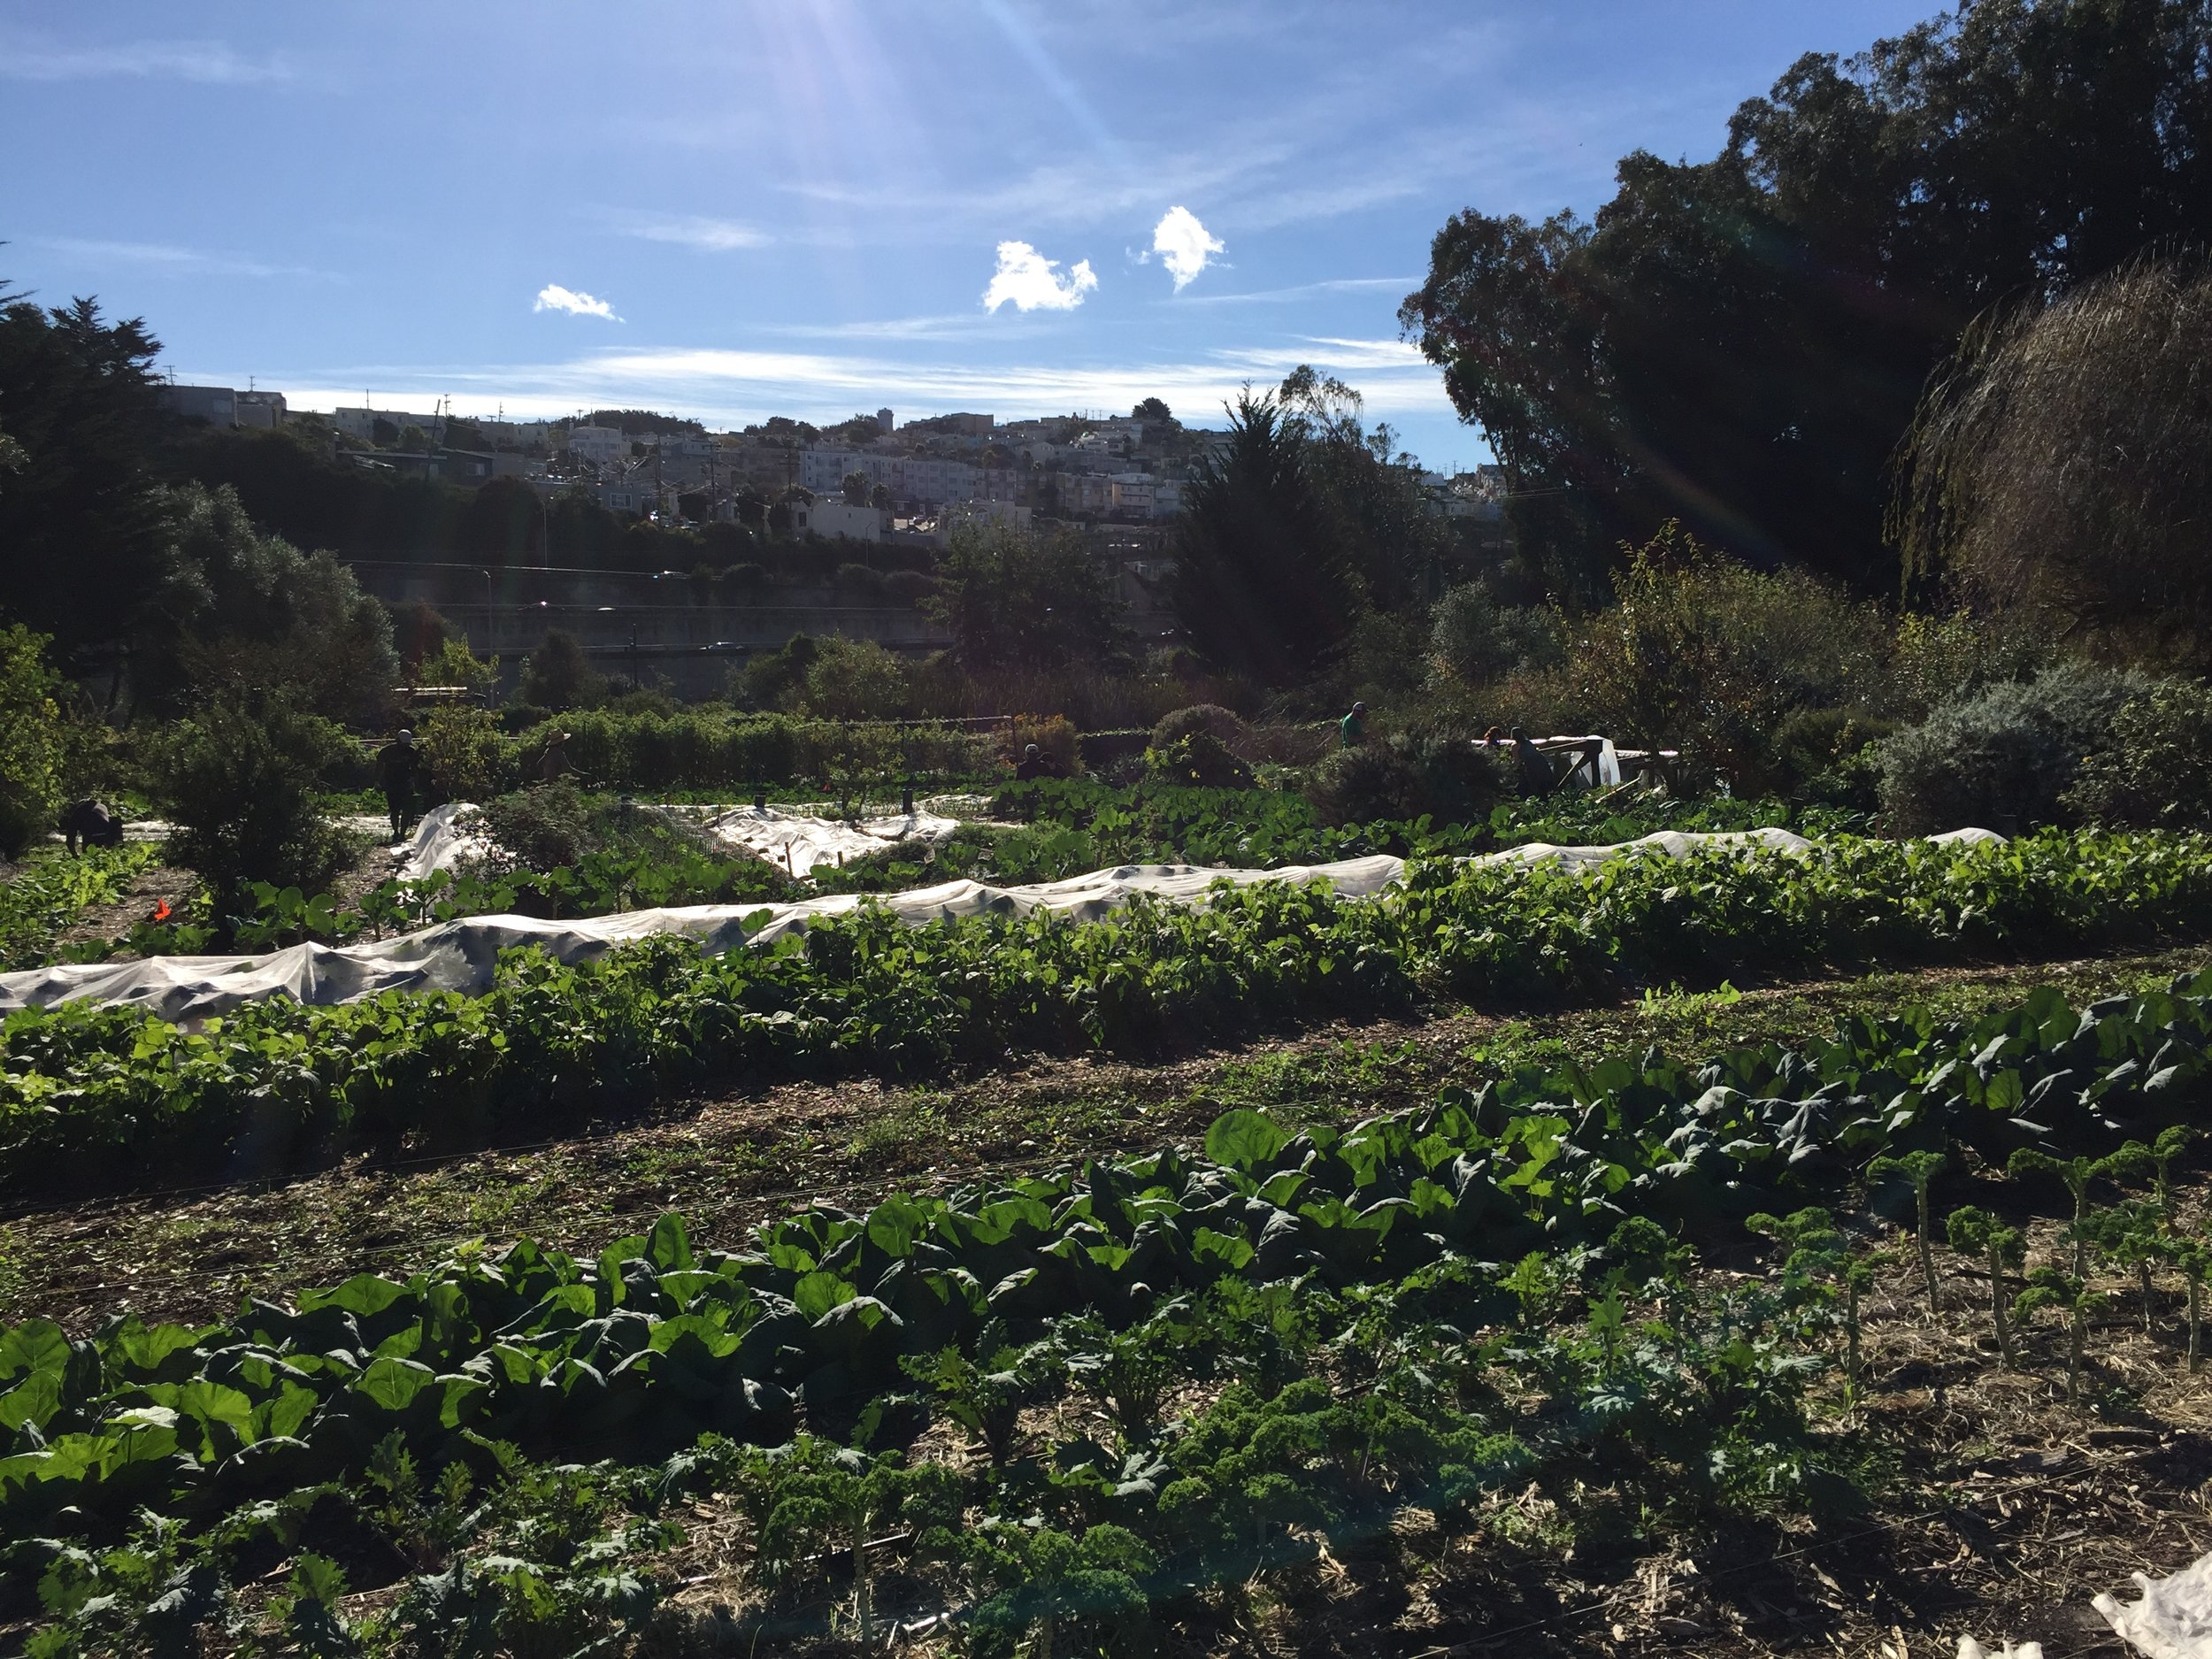 Winter crops growing at Alemany Farm, a 3.5 acre urban farm located in San Francisco.